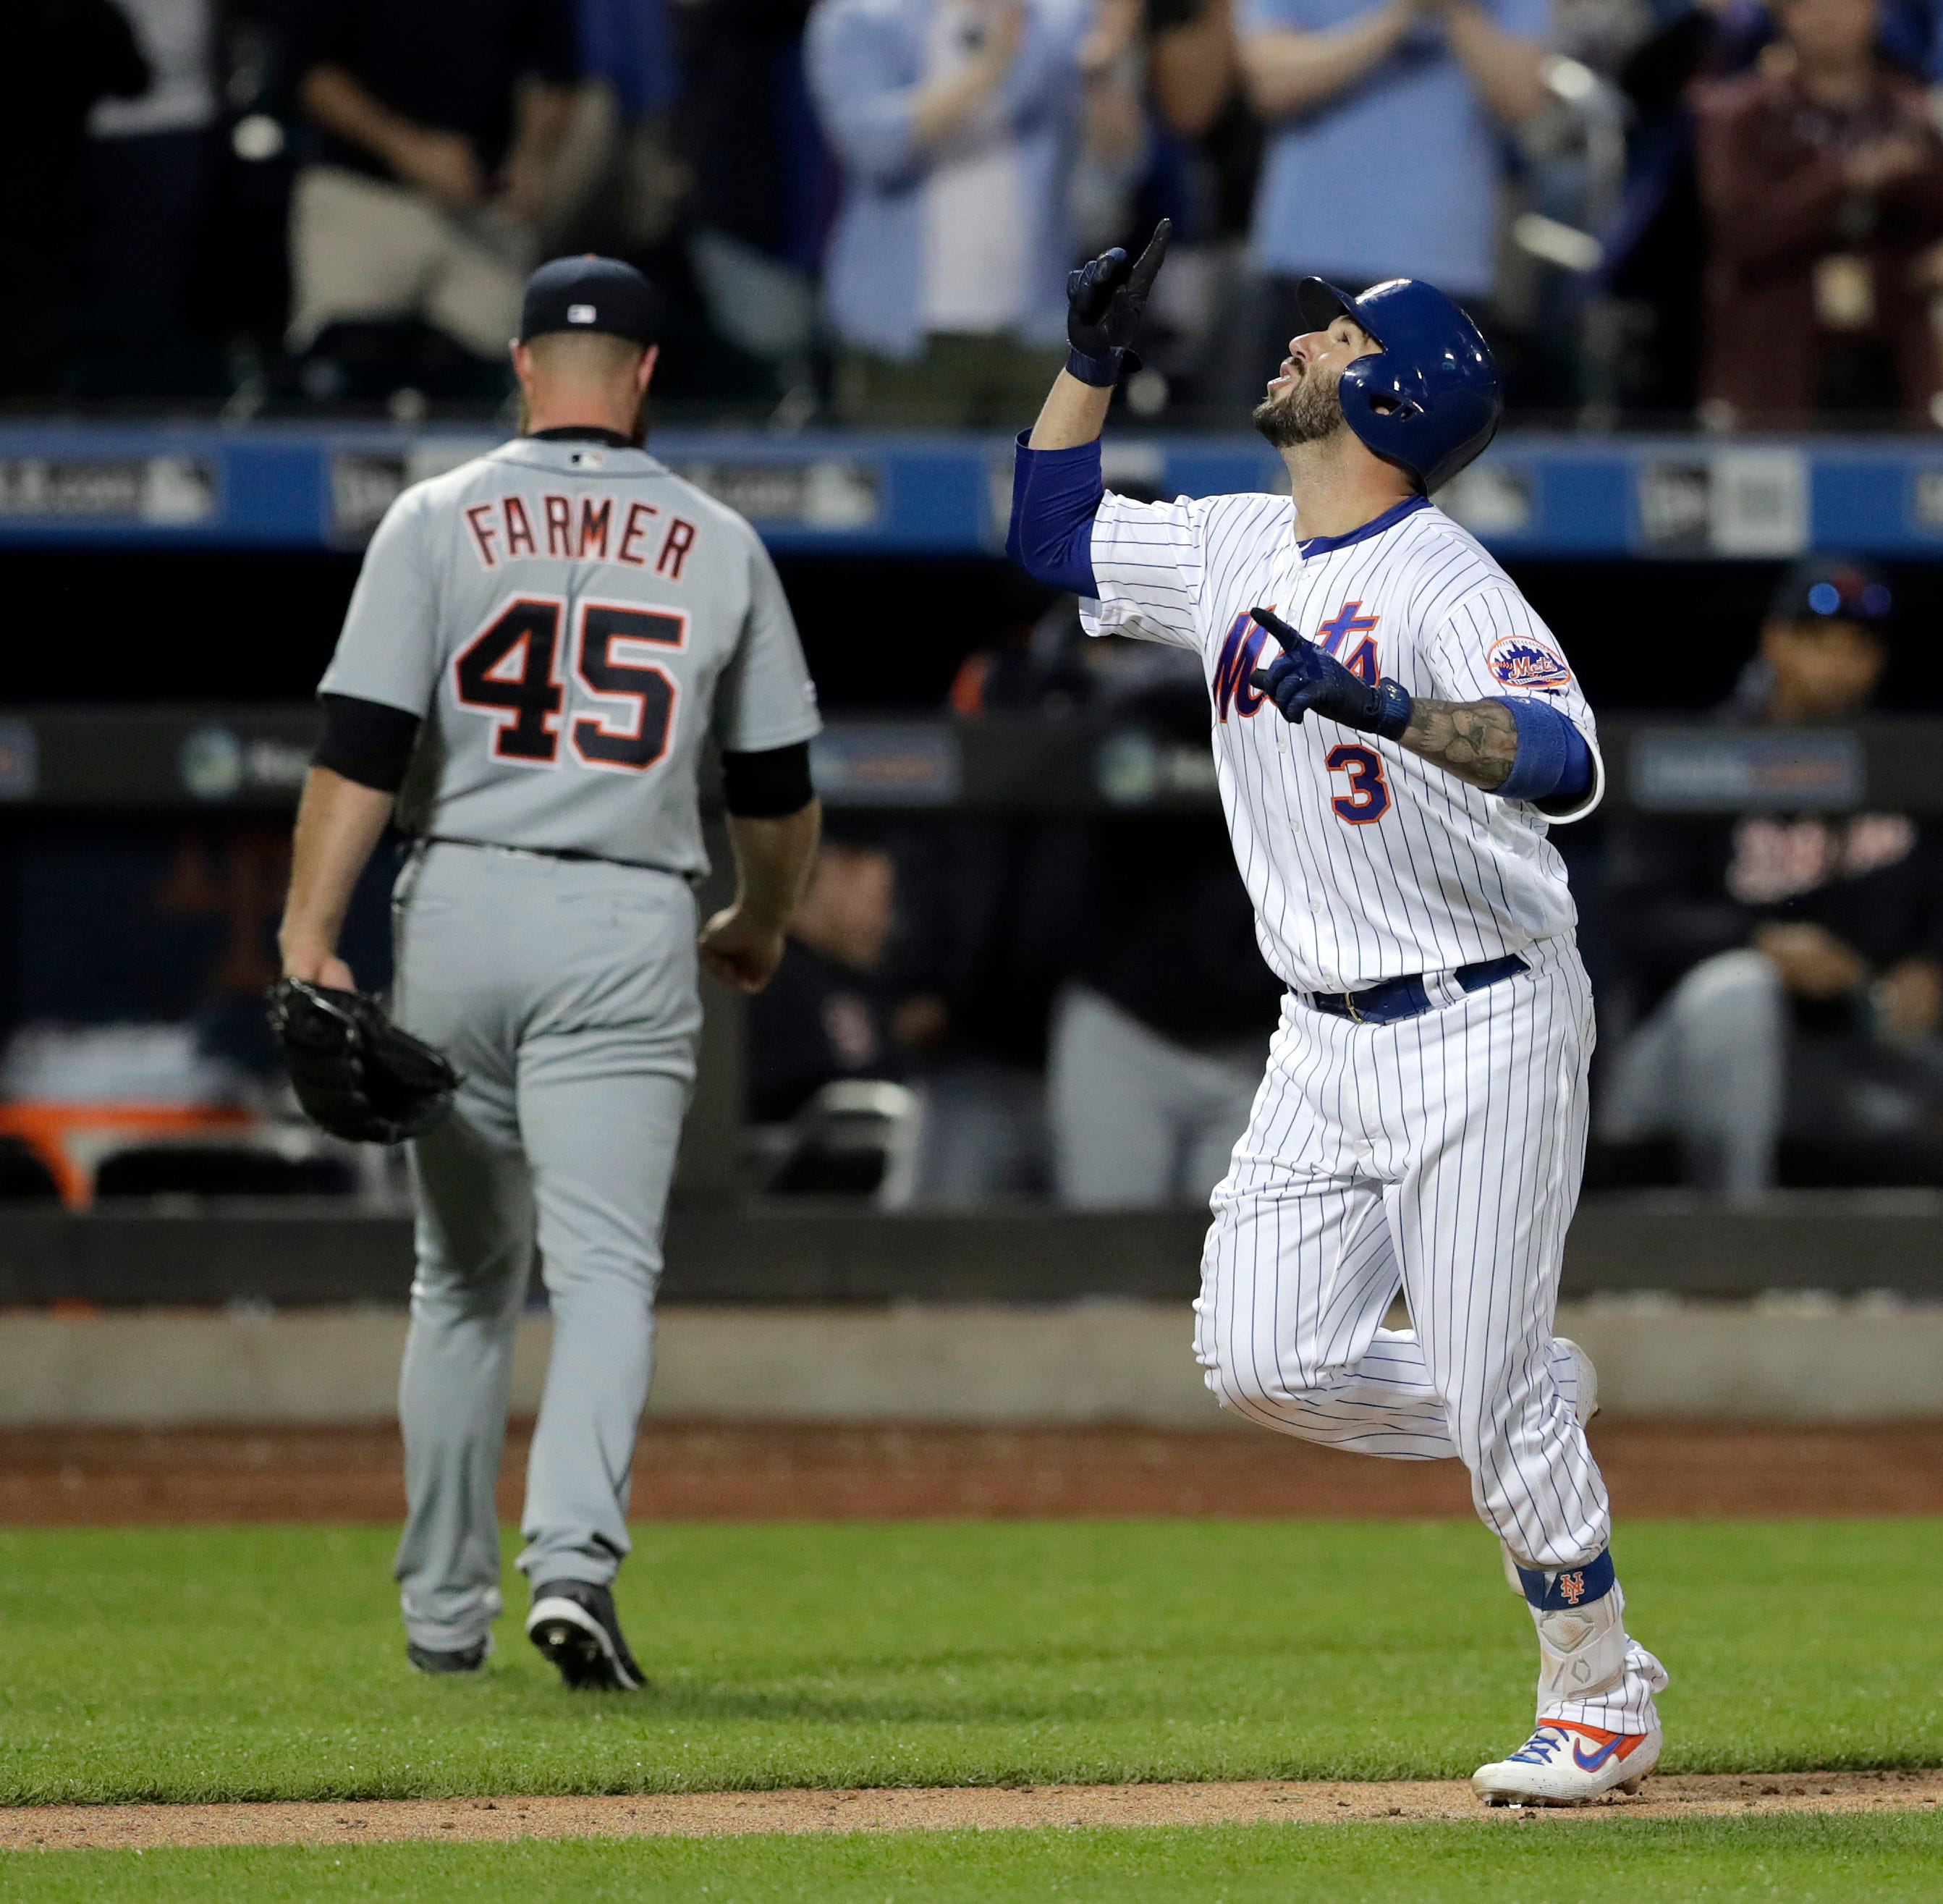 Unlucky 13: Tigers back to losing, fall to Mets on walk-off HR